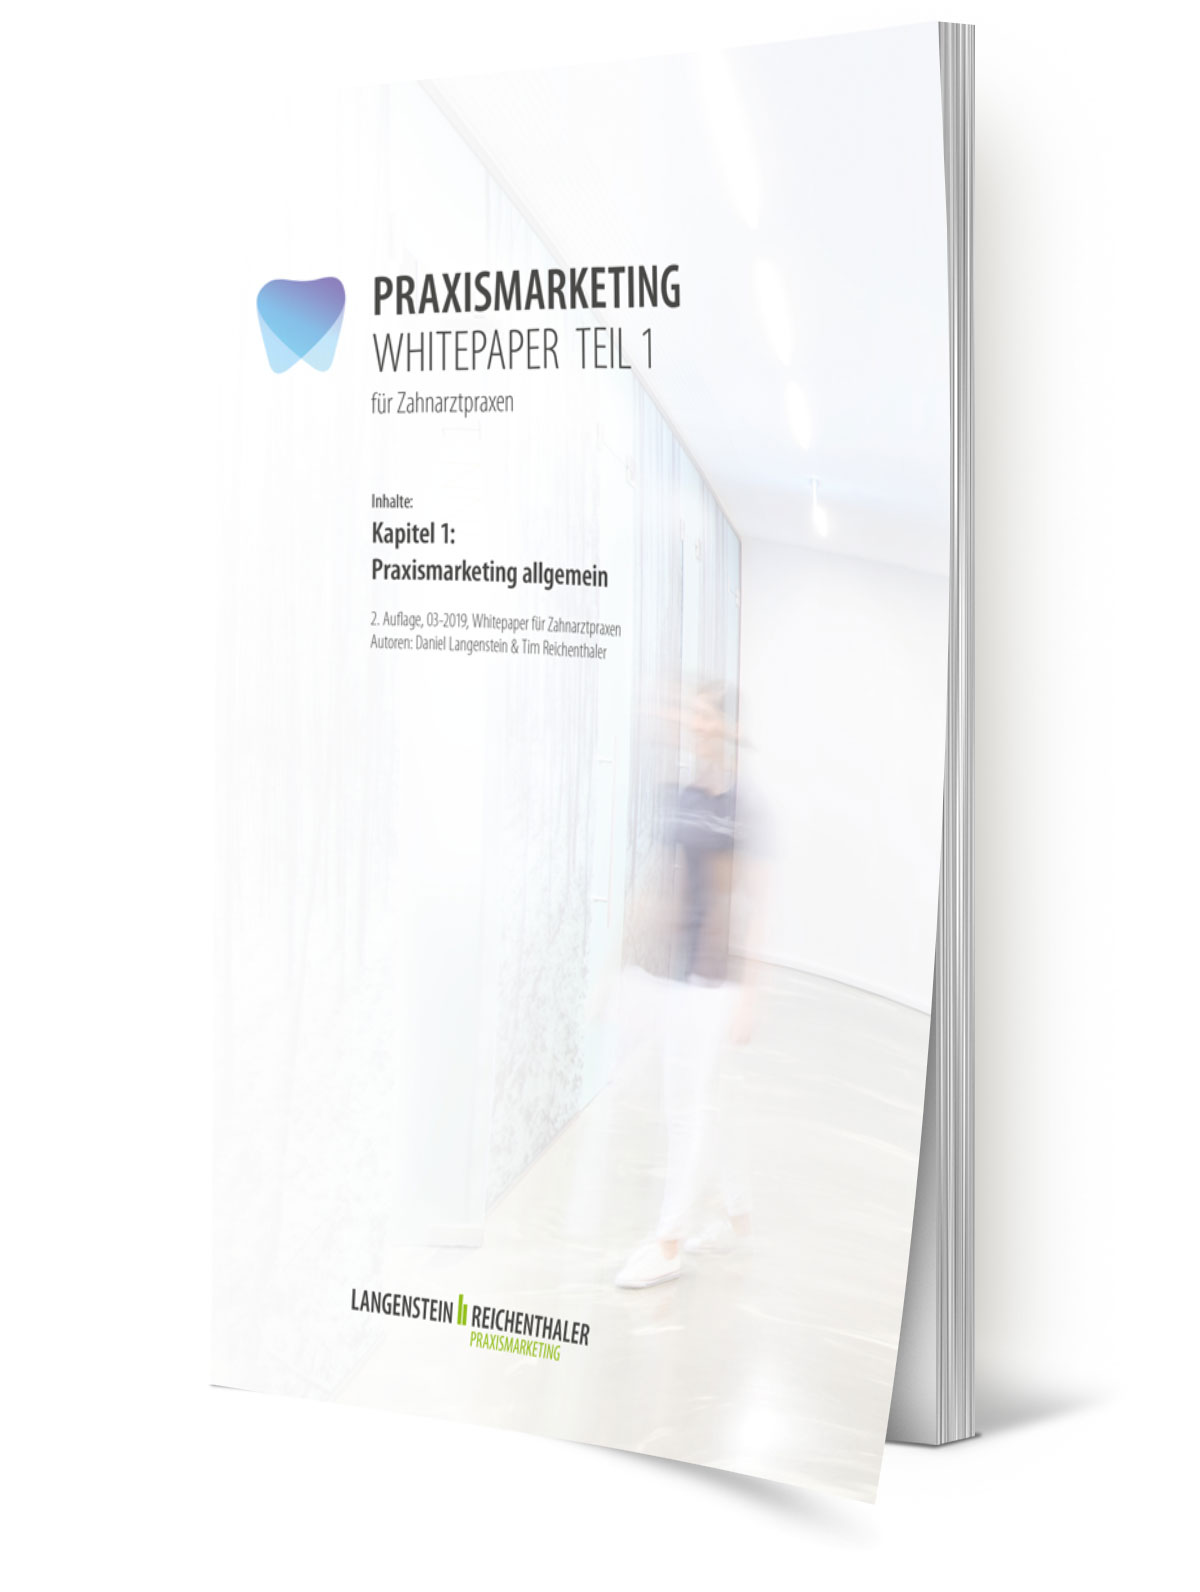 lr-praxismarketing-whitepaper-teil-1